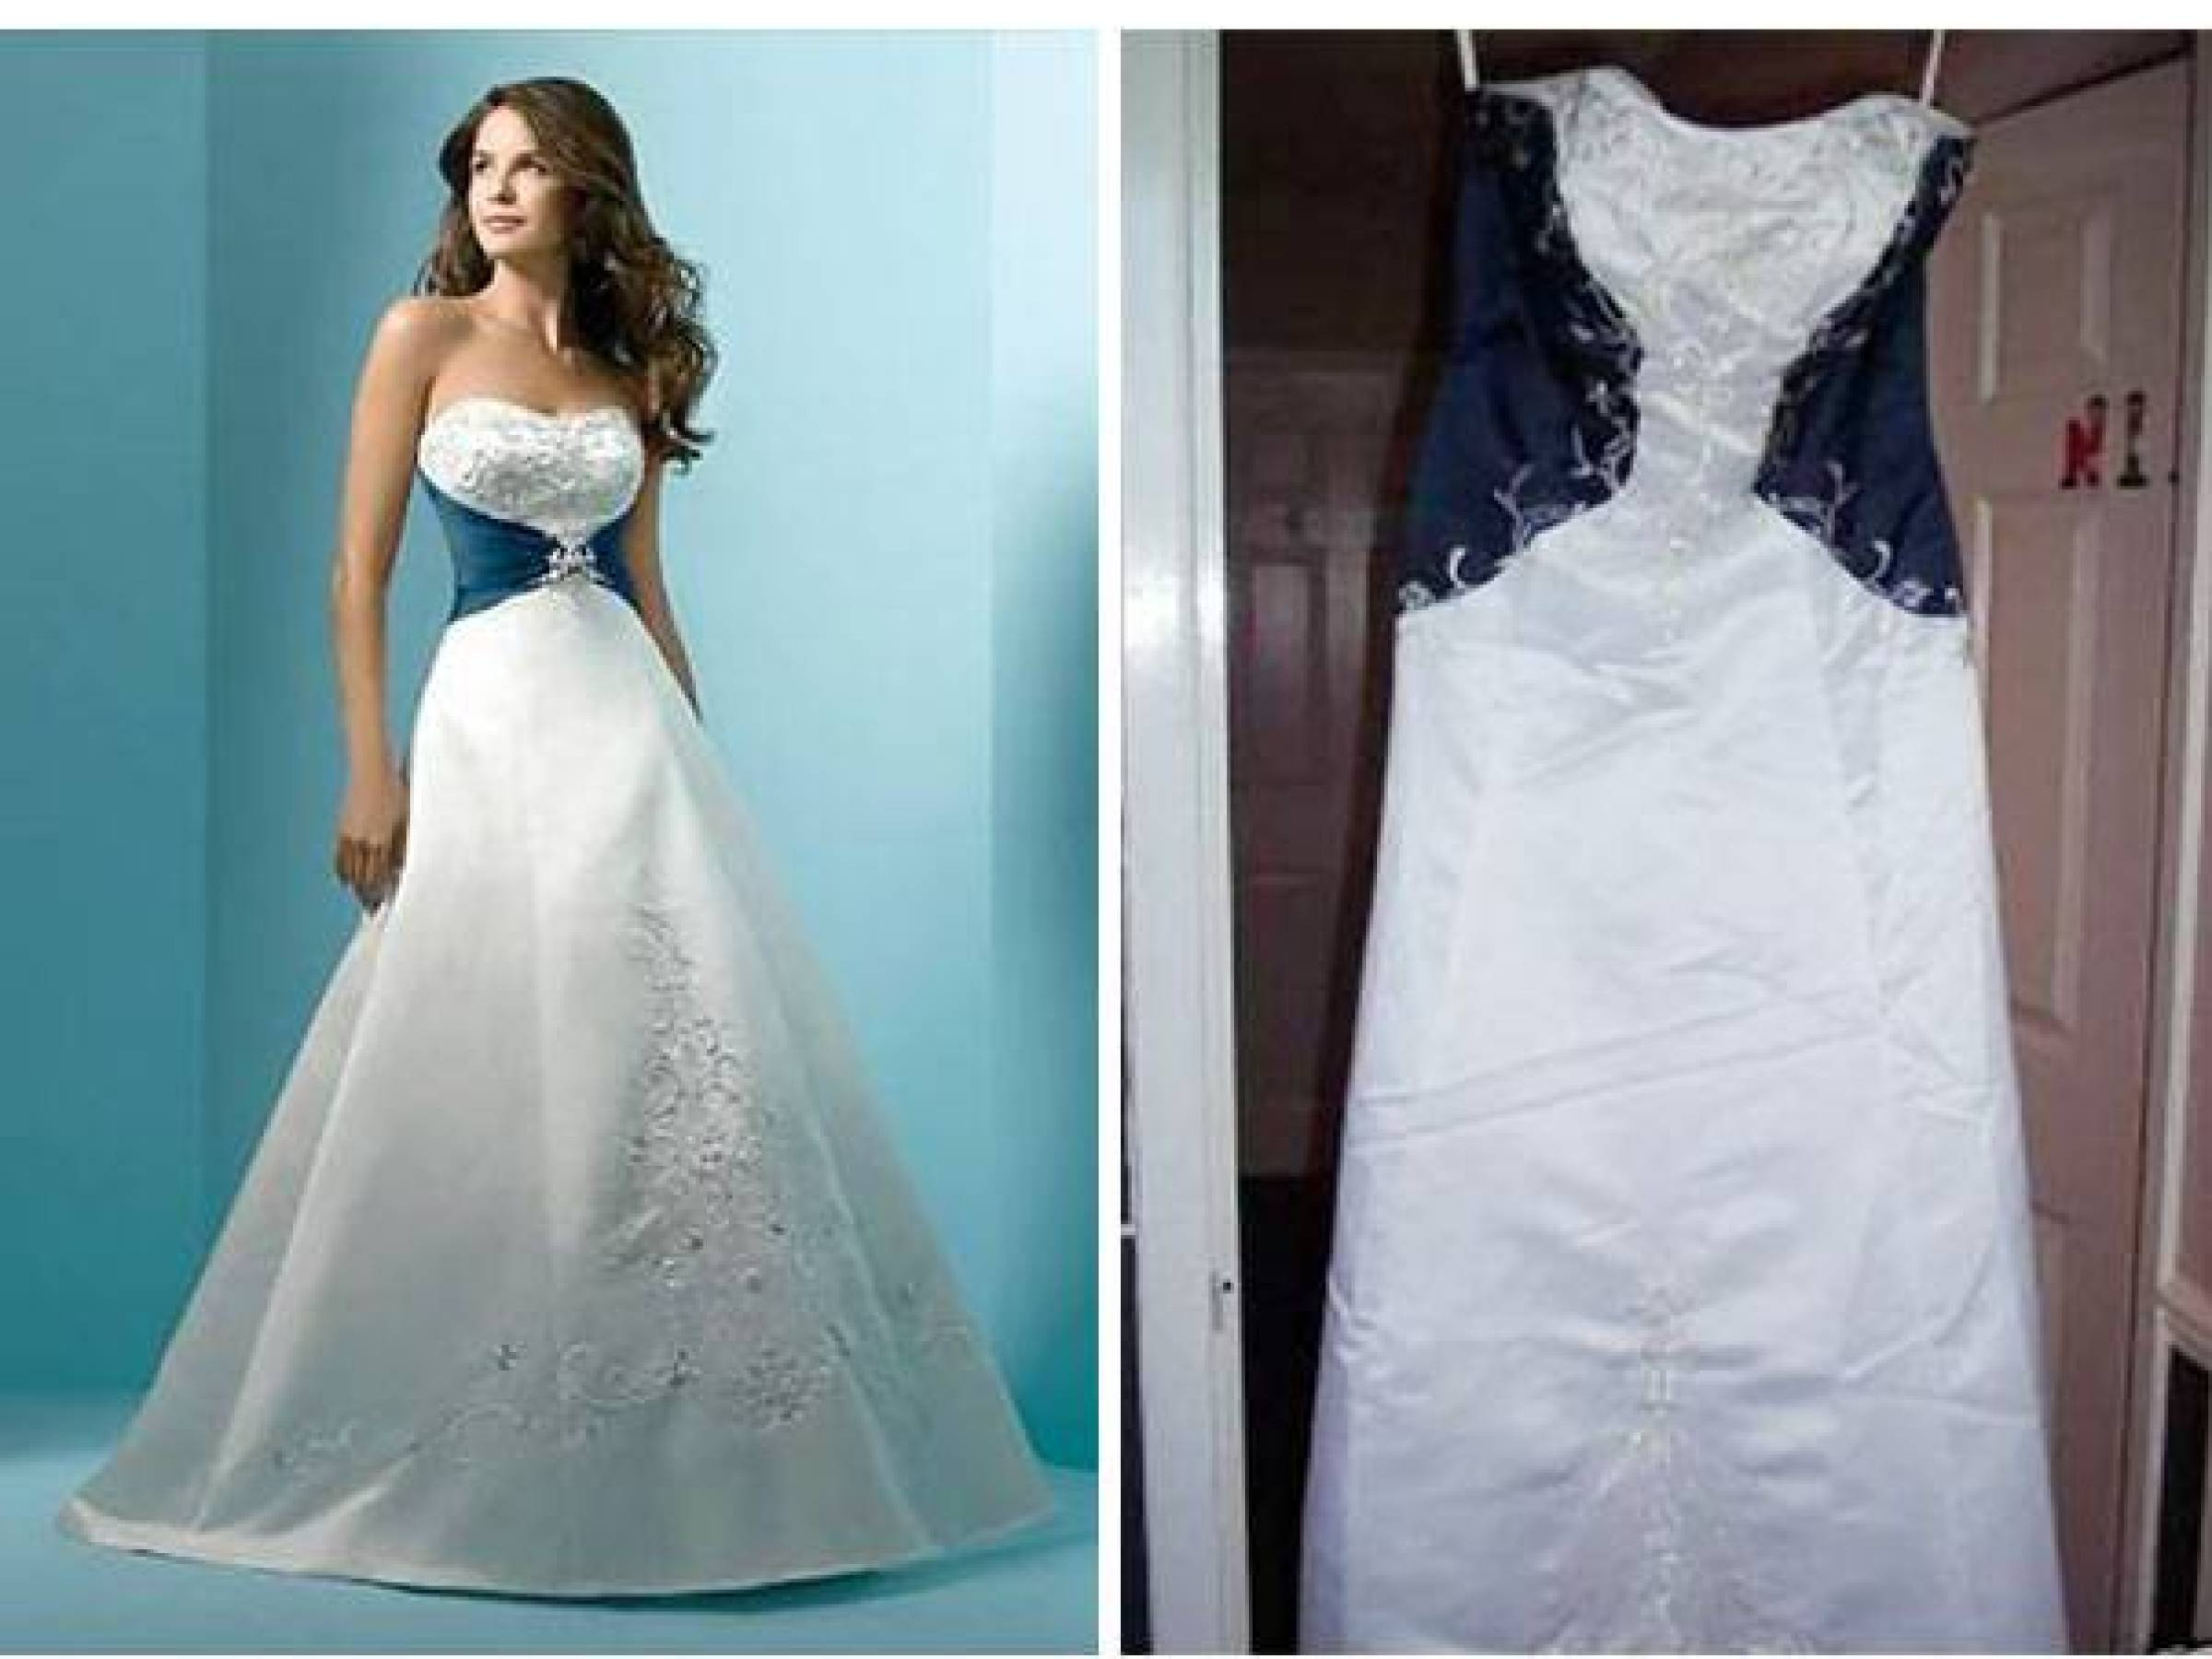 New Wedding Dresses Online Vs Reality | Wedding